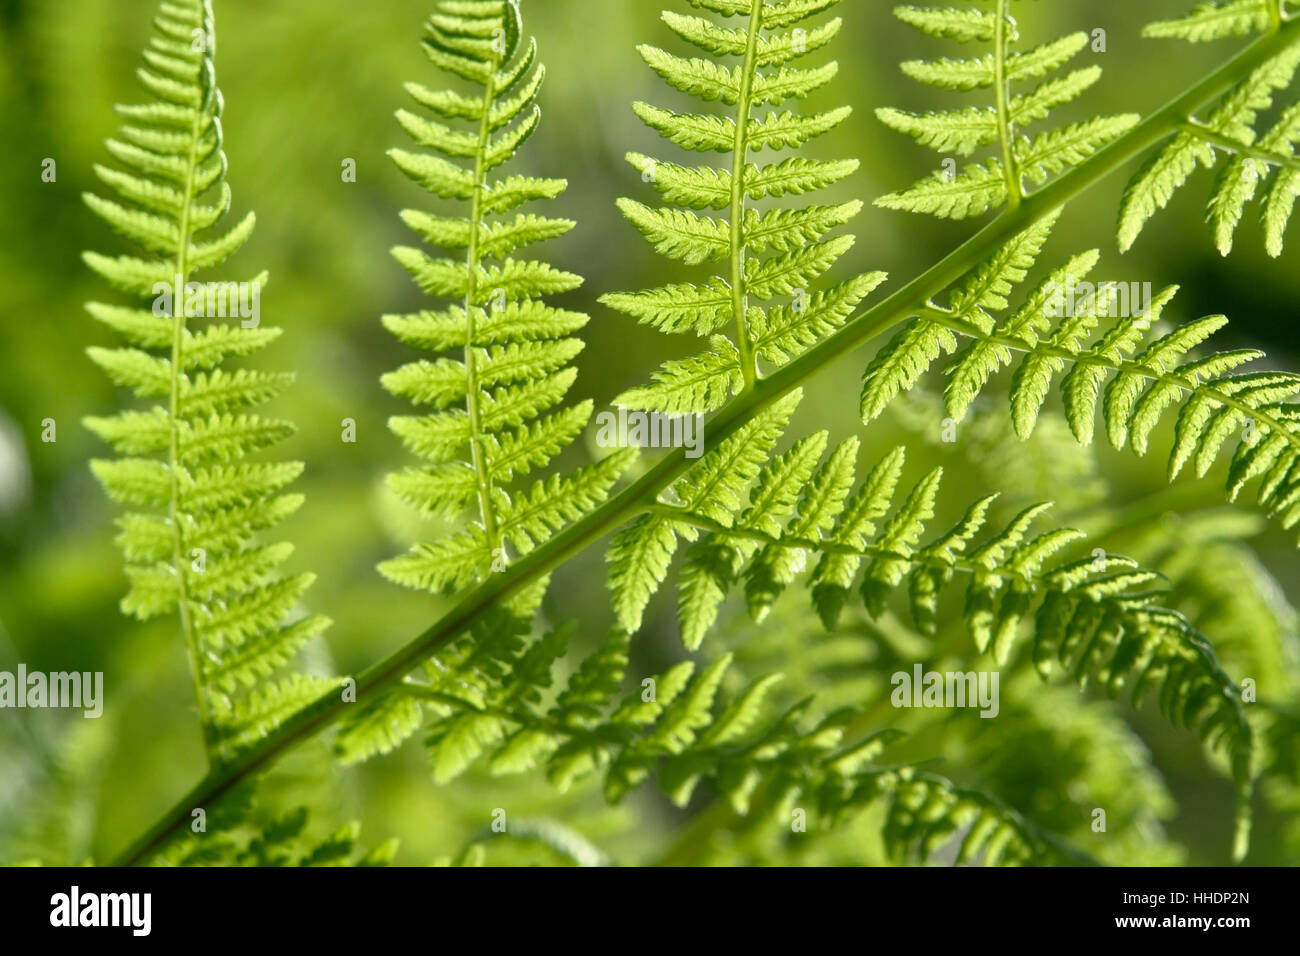 detail of a sunny illuminated fern leaf at summer time - Stock Image